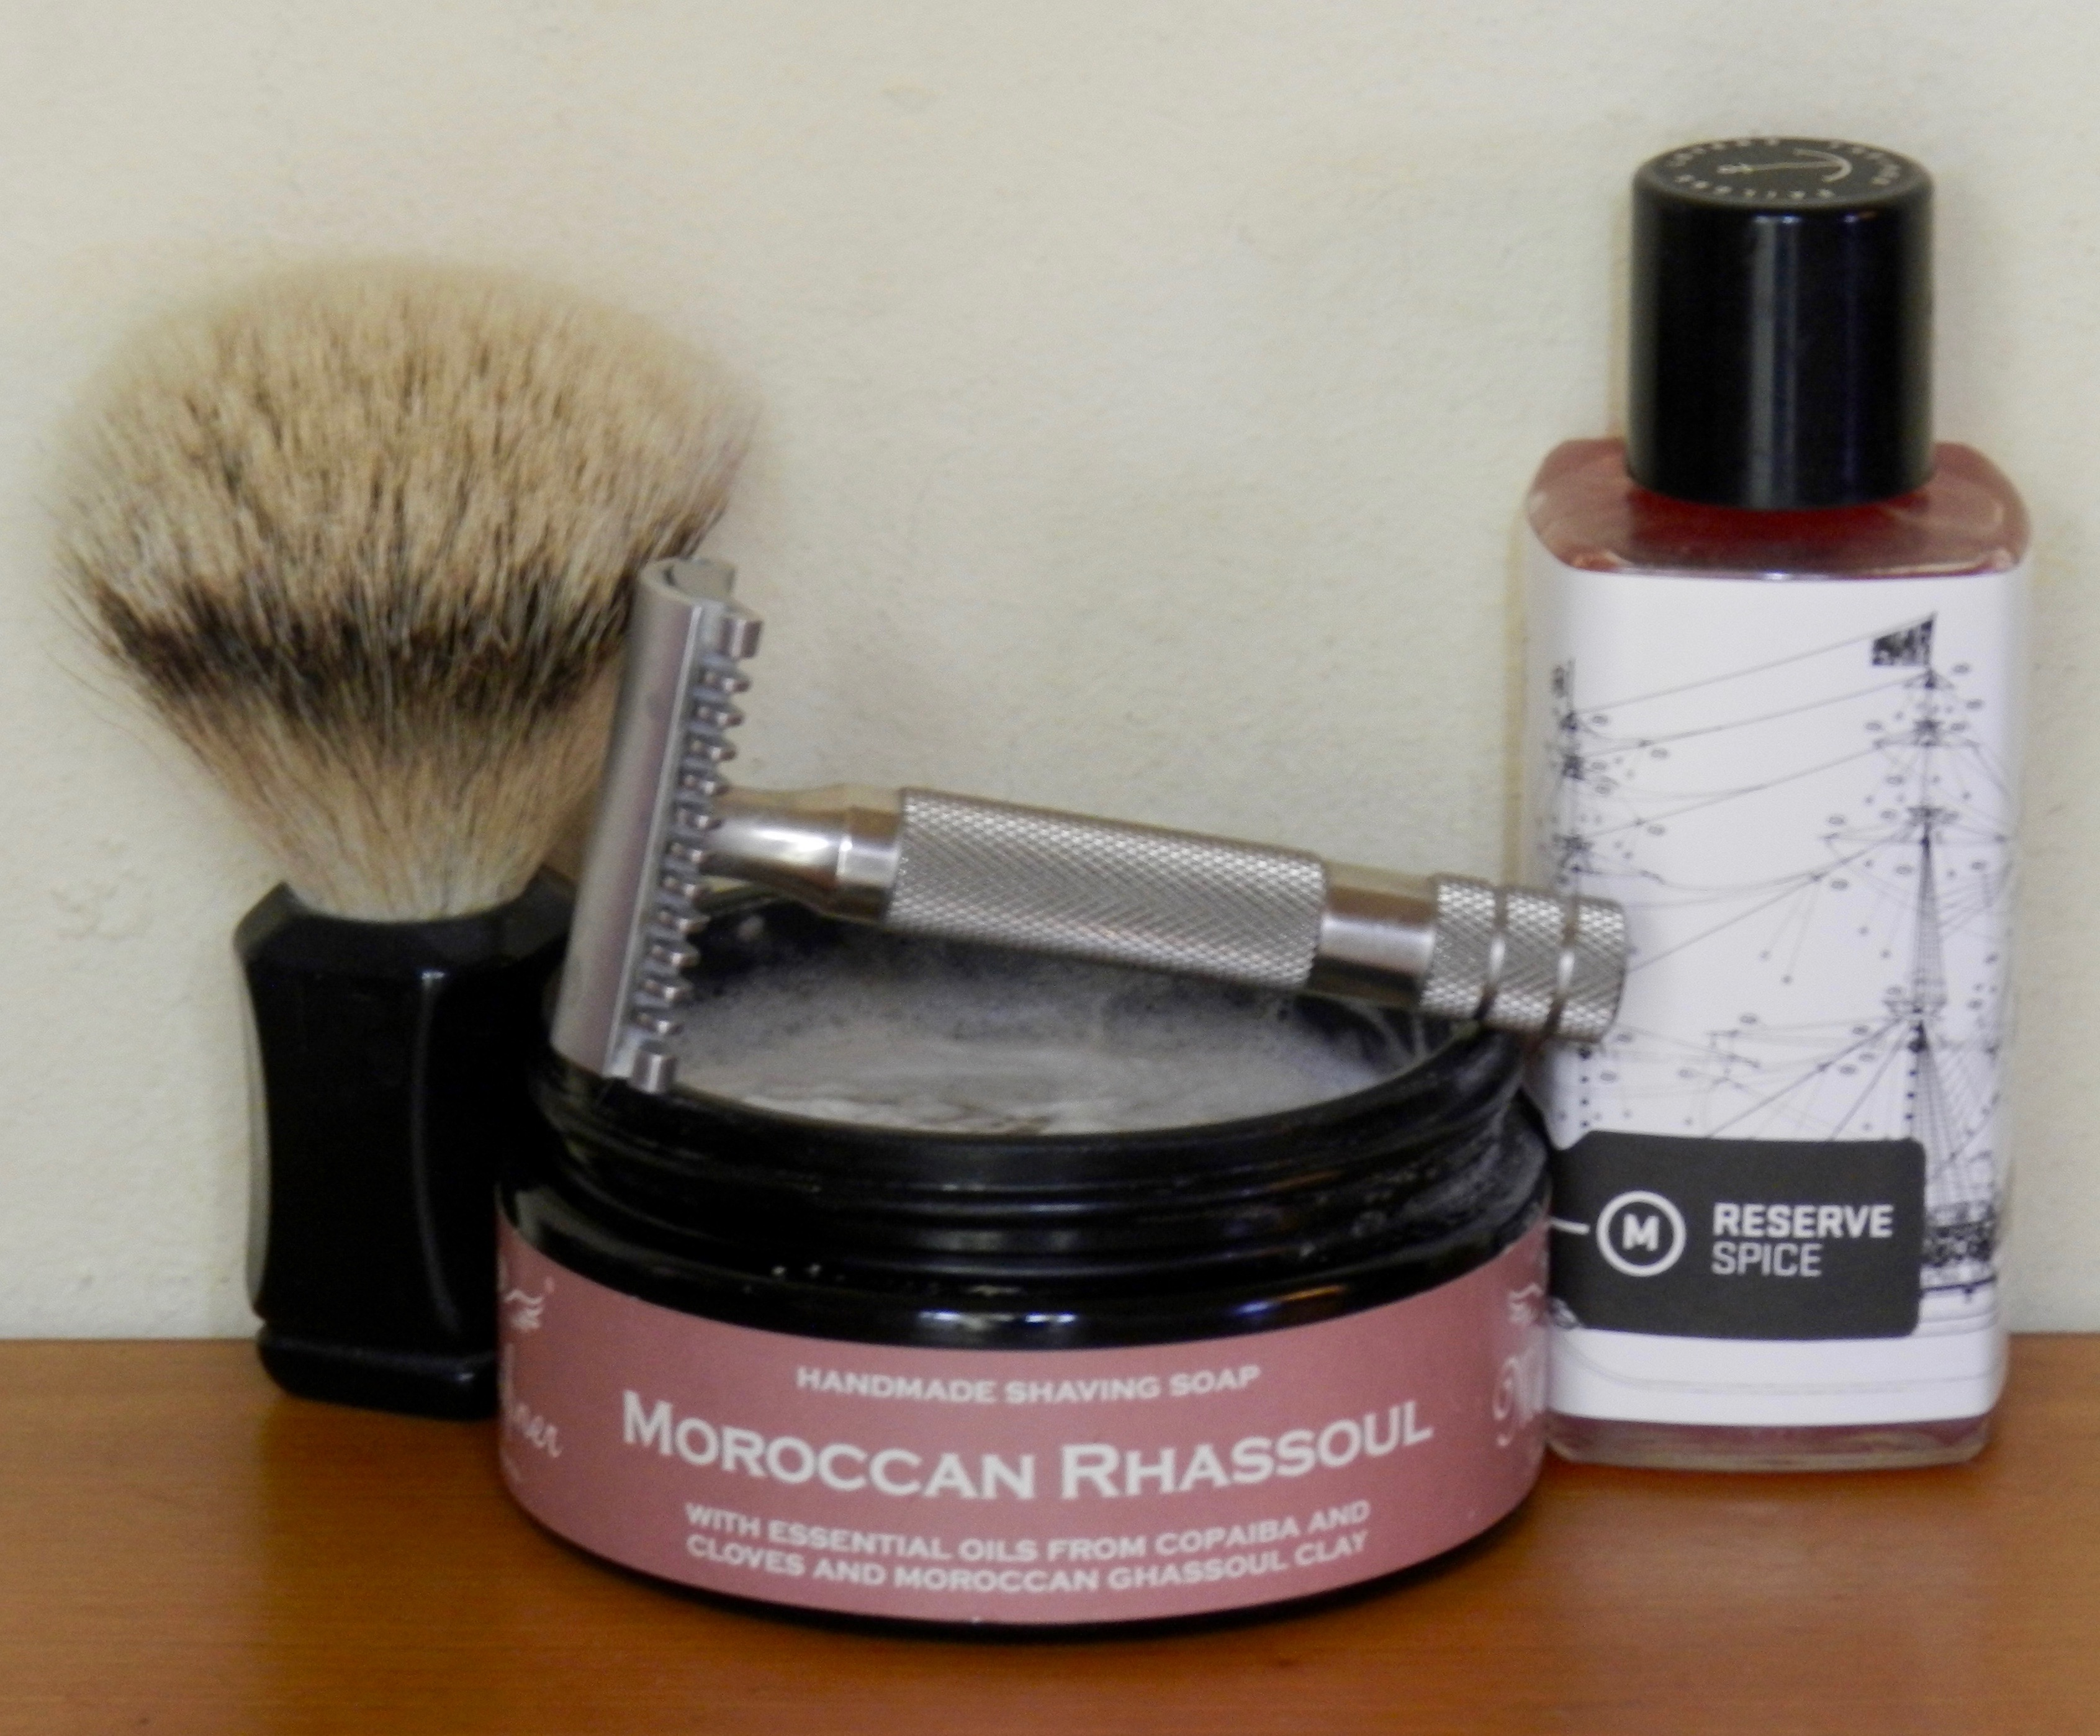 whipped dog silvertip meißner tremonia moroccan rhassoul and the